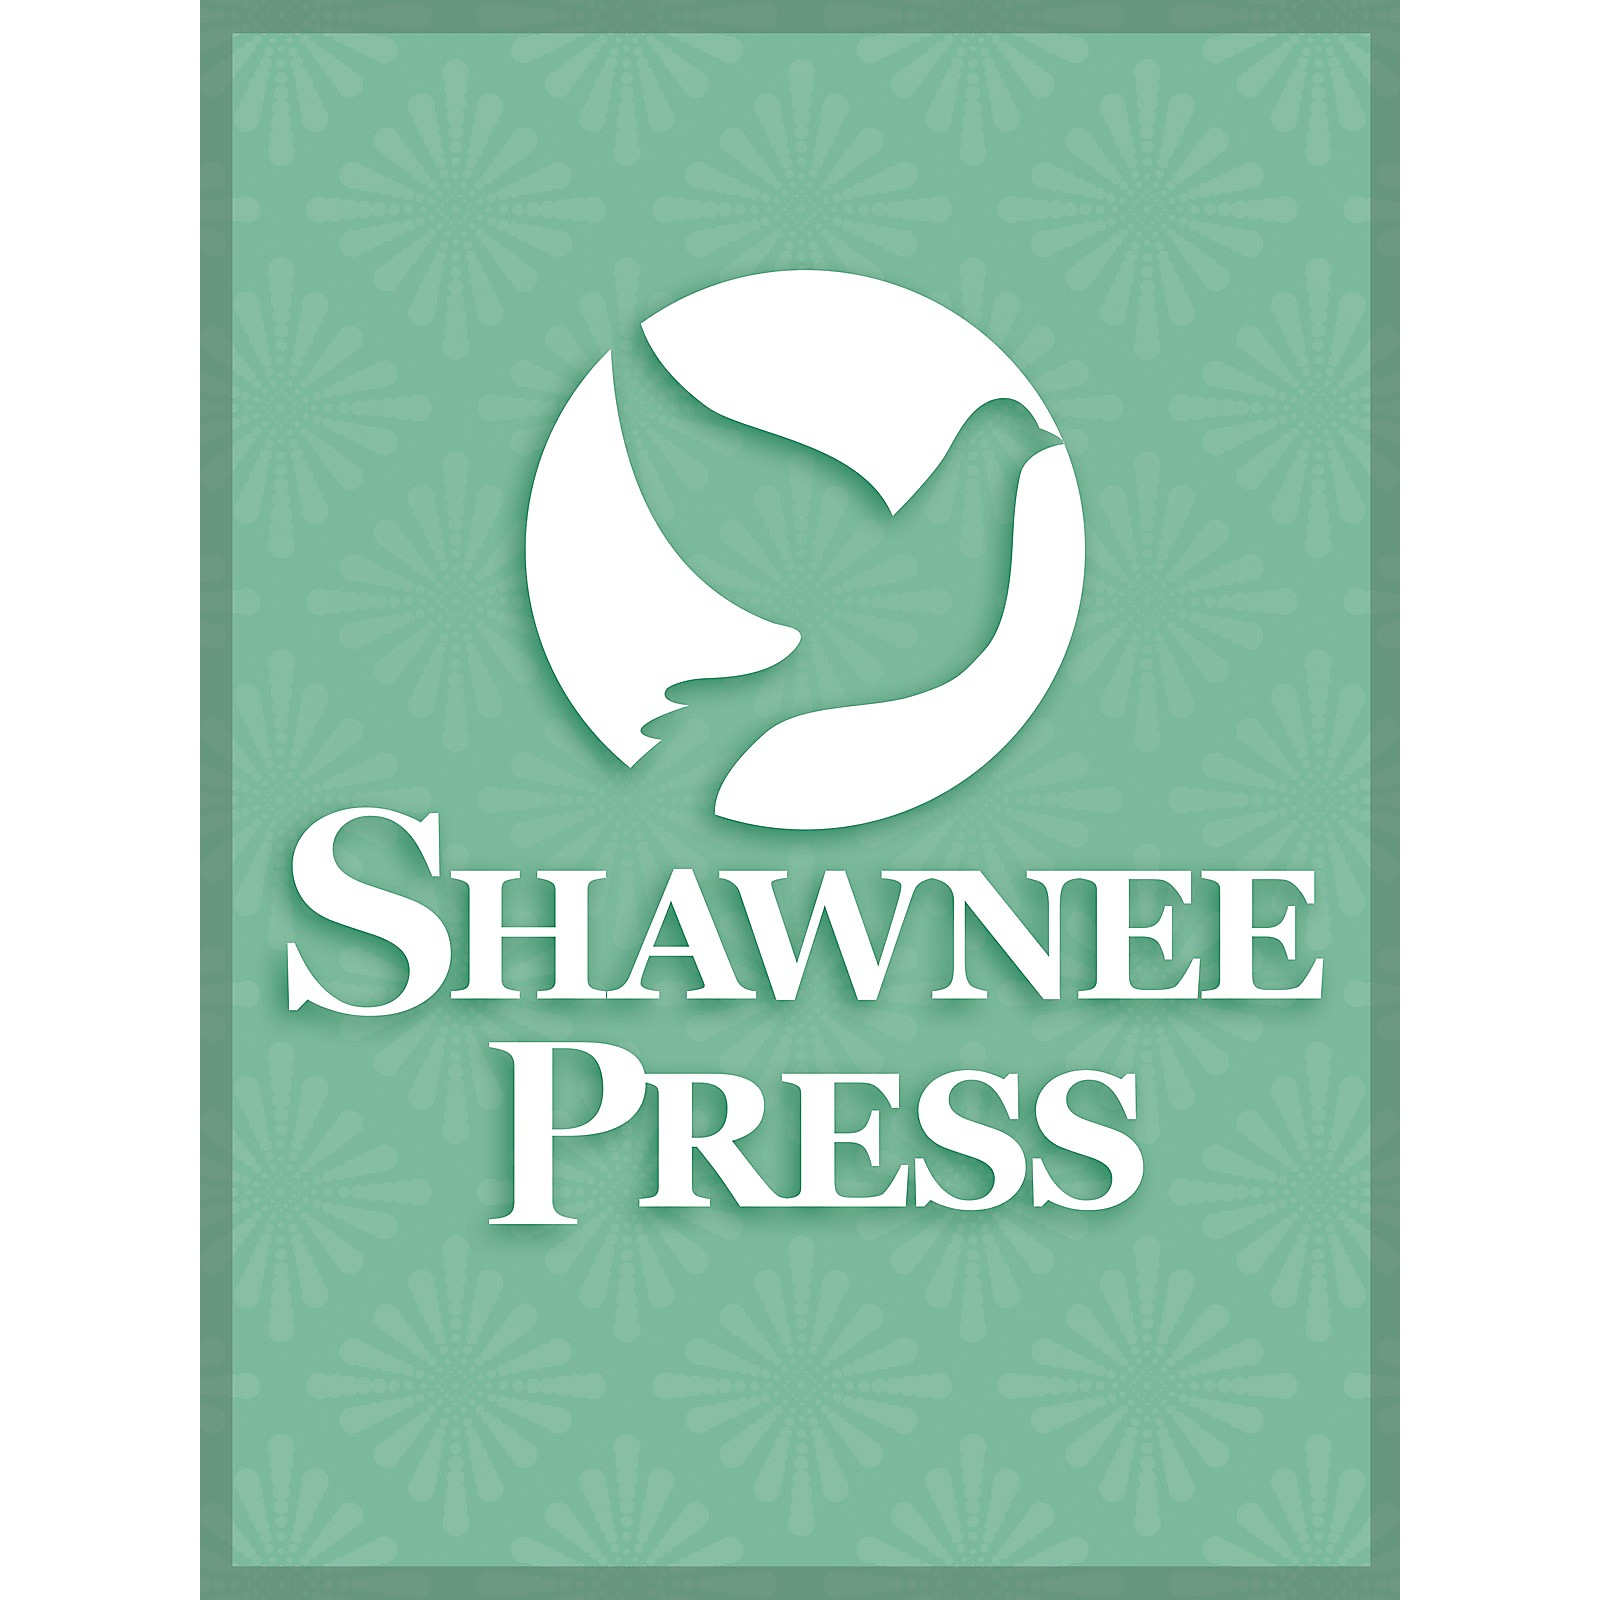 Shawnee Press Dancing on the Ceiling (Sax Quartet. Bass. Drums) Shawnee Press Series Arranged by May